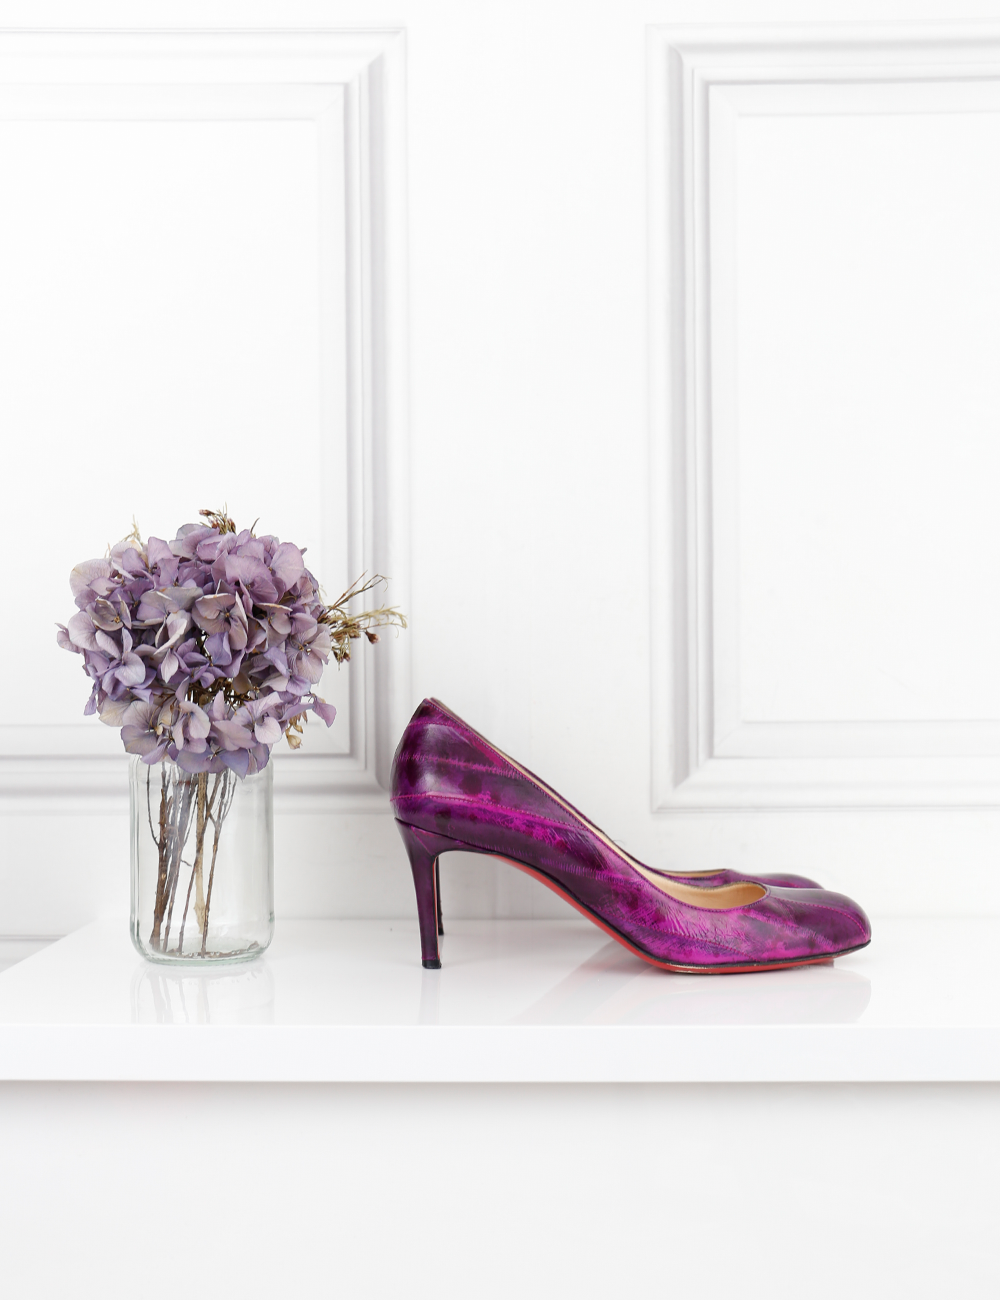 Louboutin purple simple pumps 70 4UK- My Wardrobe Mistakes